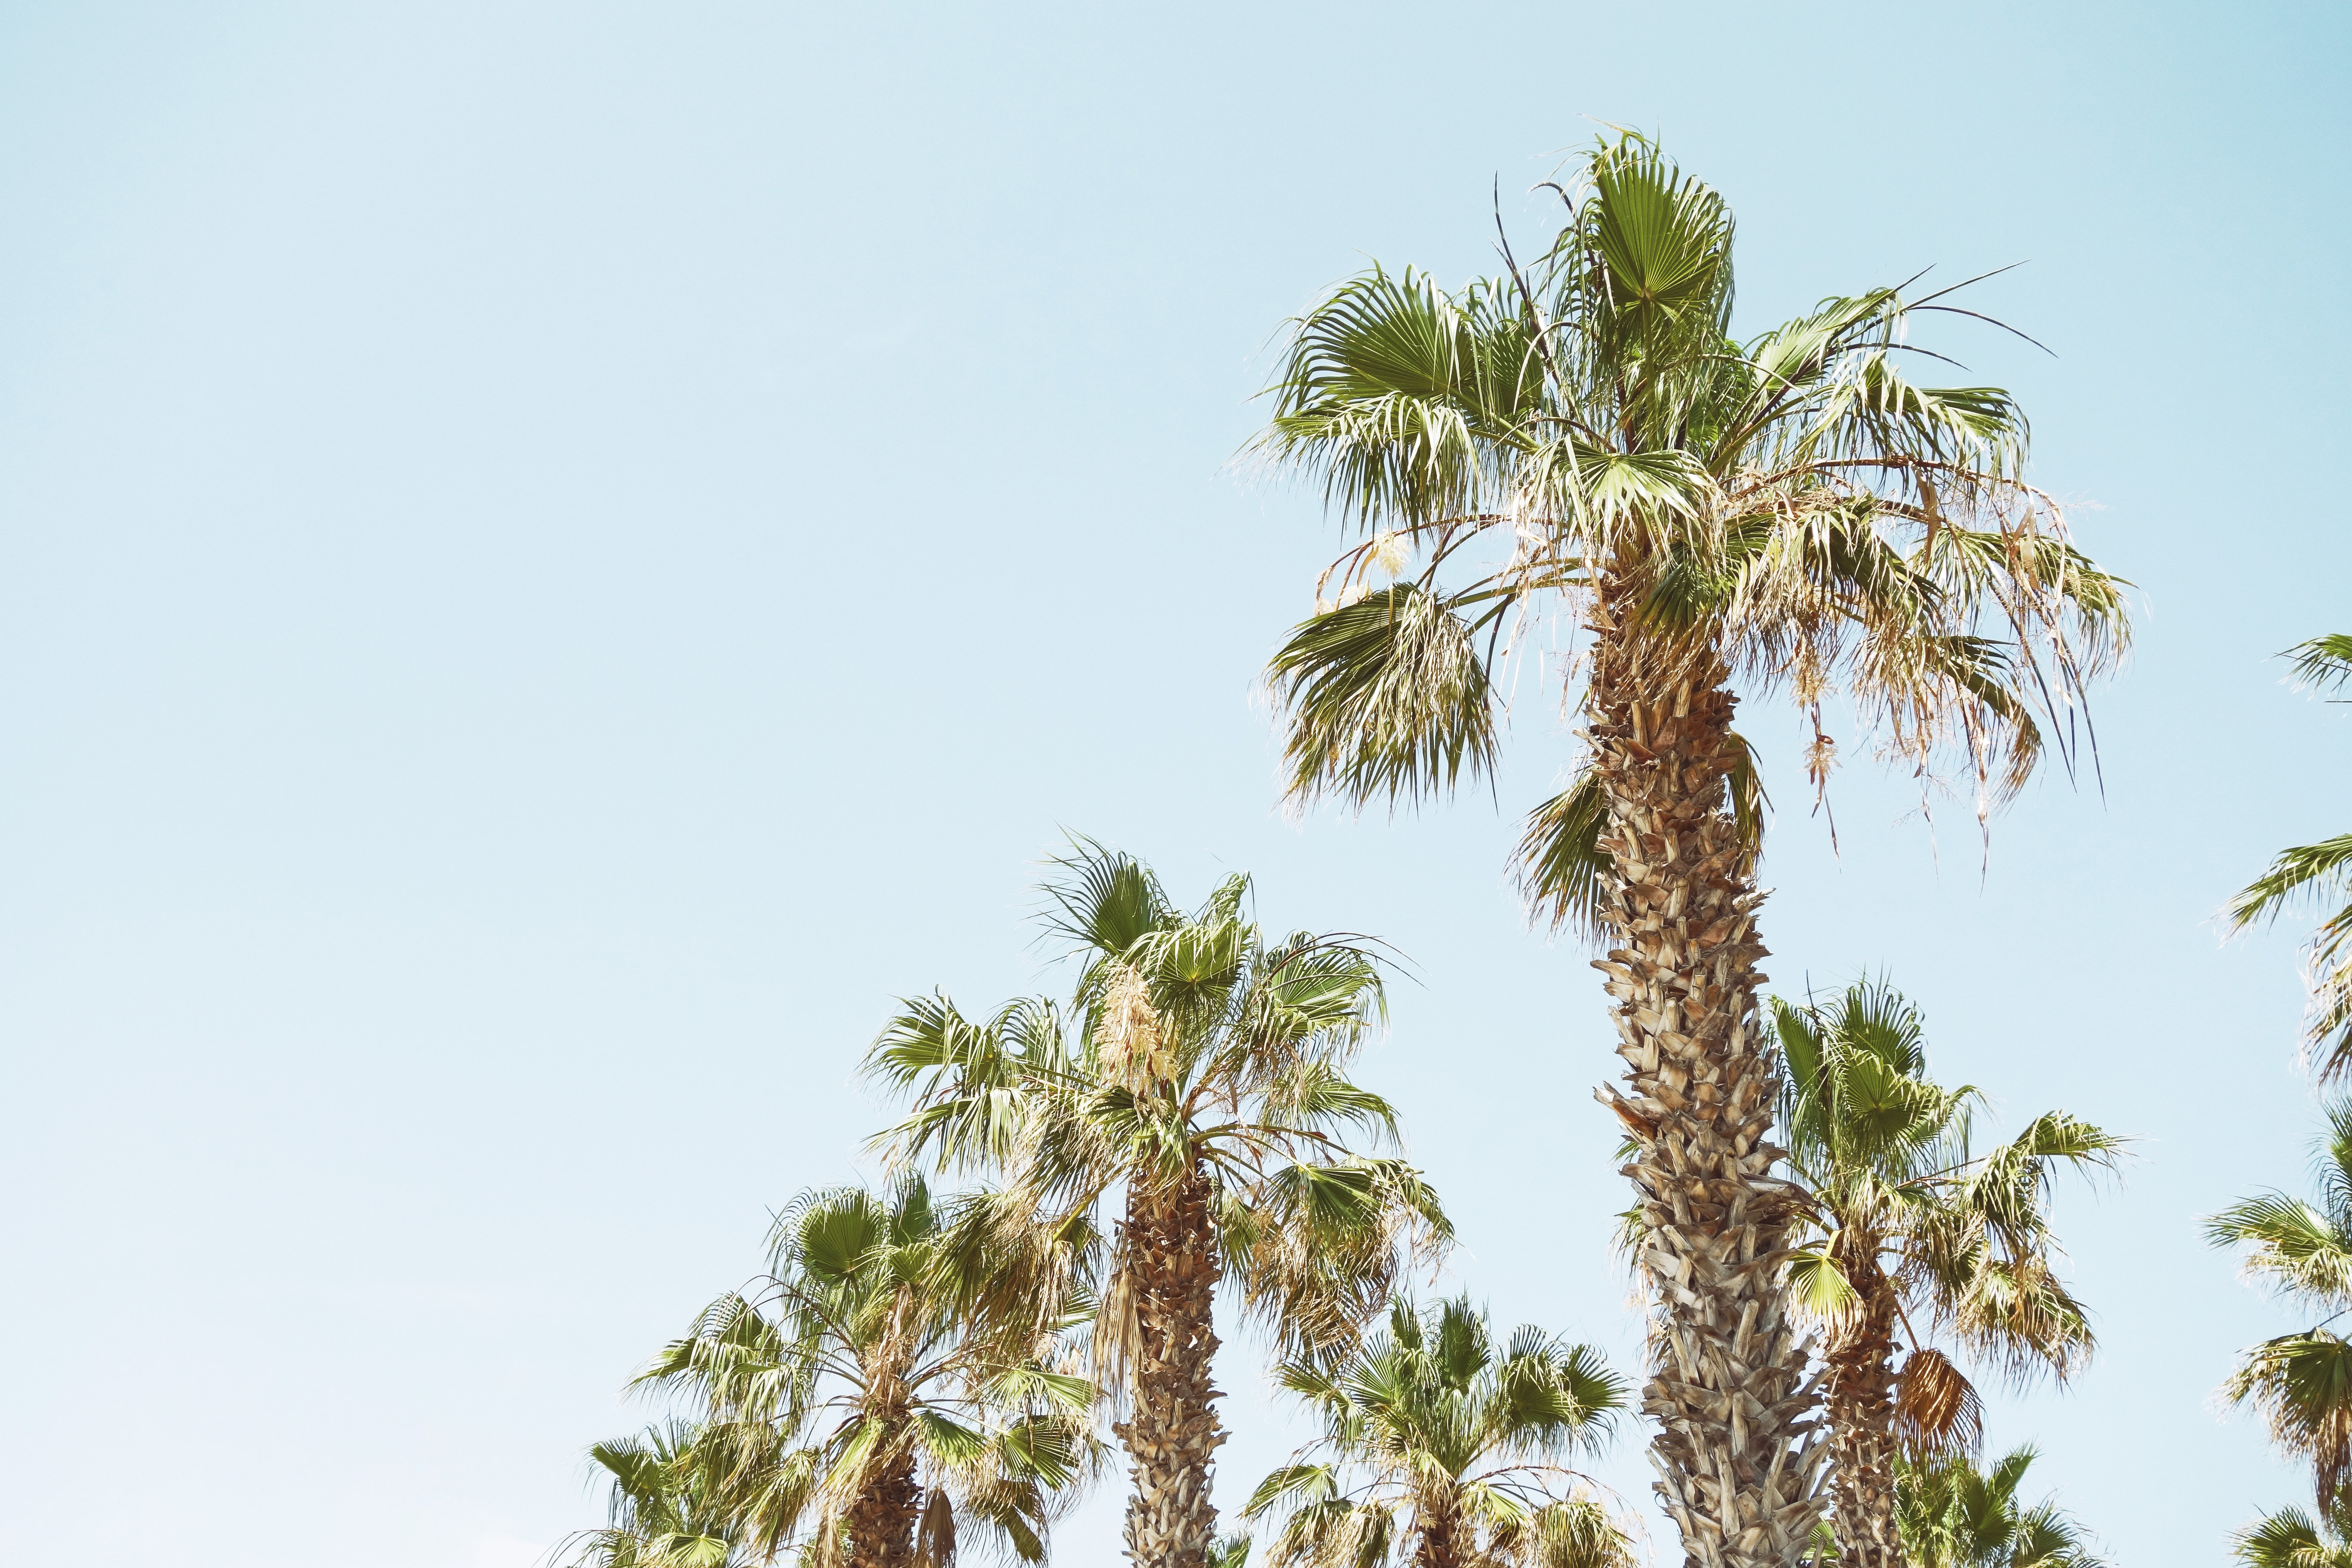 palm tree under clear sky during daytime